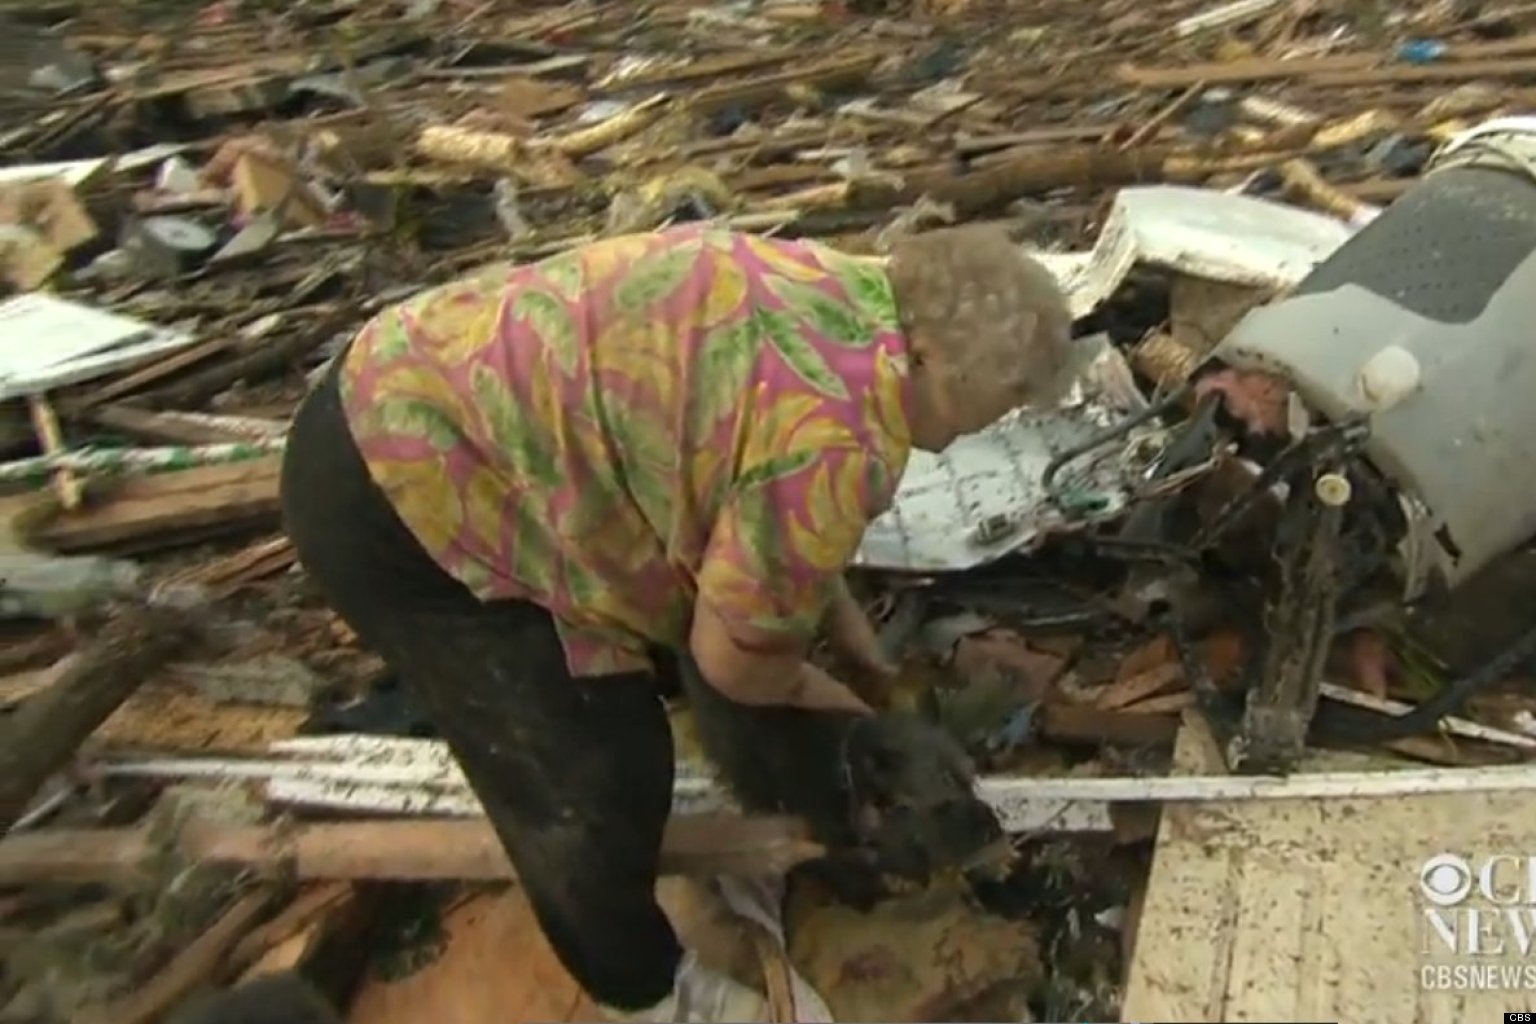 WATCH: Tornado Victim Finds Dog During CBS Interview